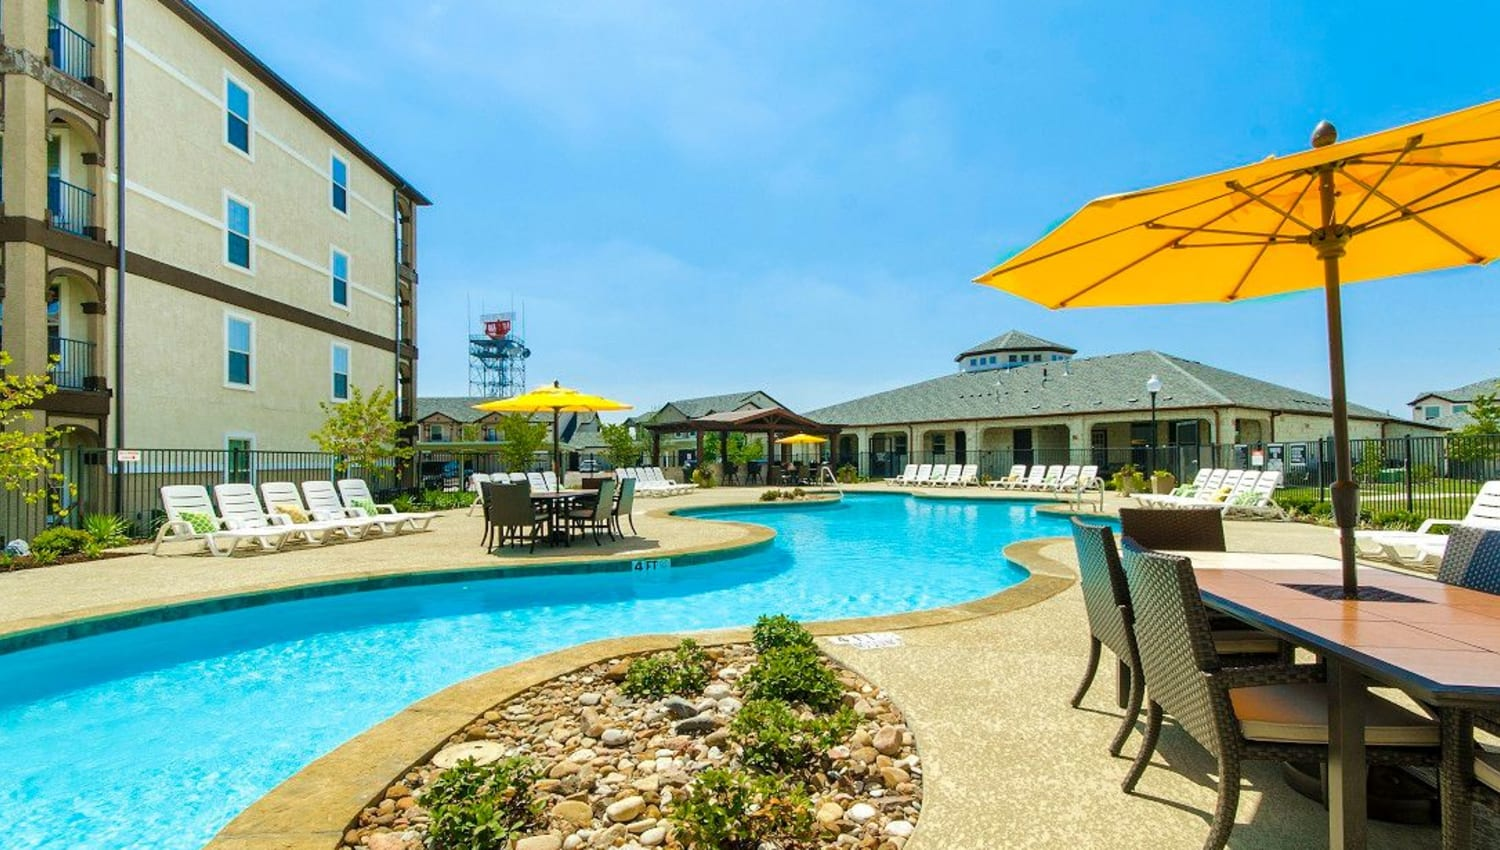 Winding pool with great places to sit in the shade nearby at Olympus Woodbridge in Sachse, Texas